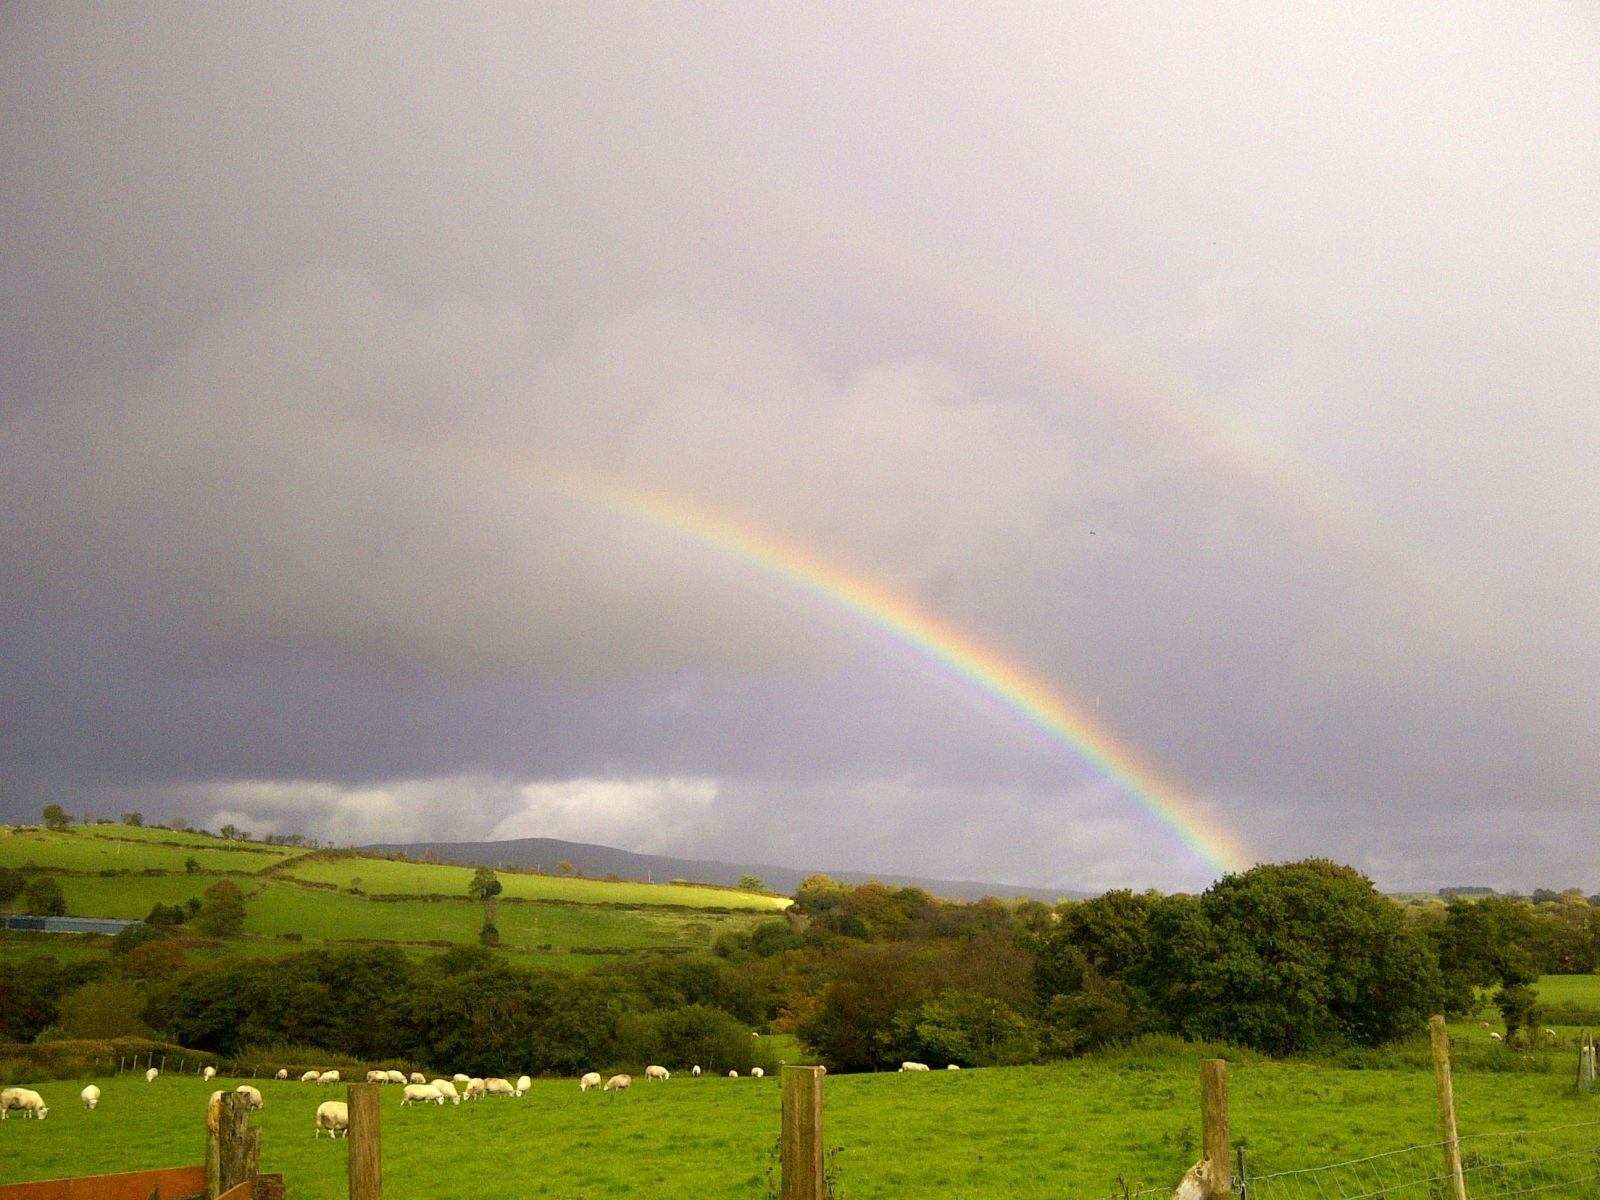 Rainbow in the Brecon Beacons. Credit: CNP